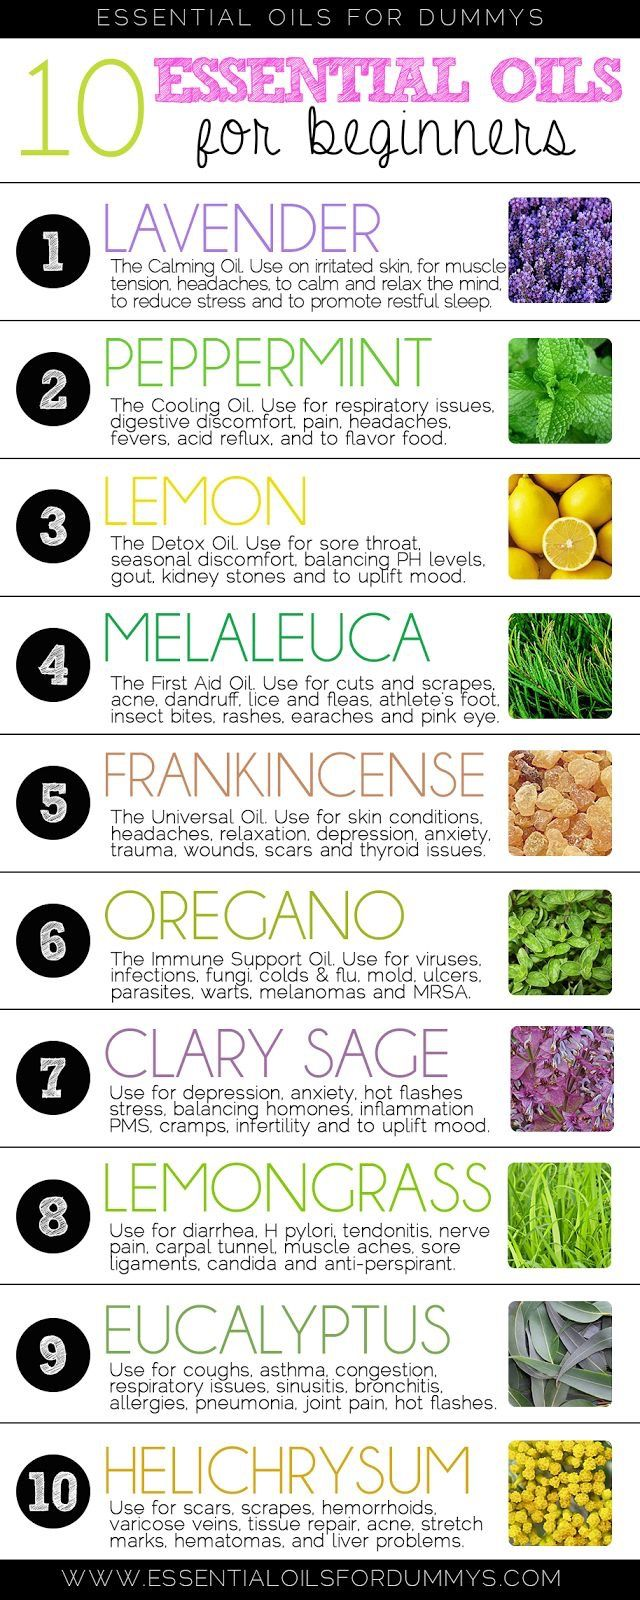 10 Essential Oils